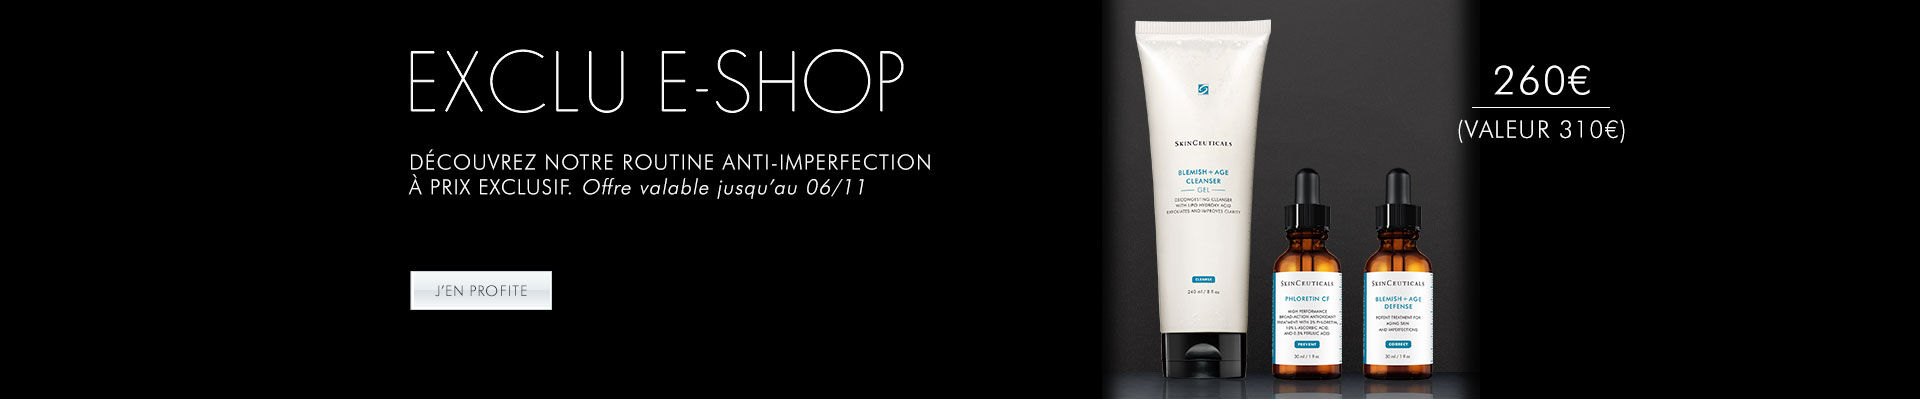 Offre exclusive - routine anti-imperfections